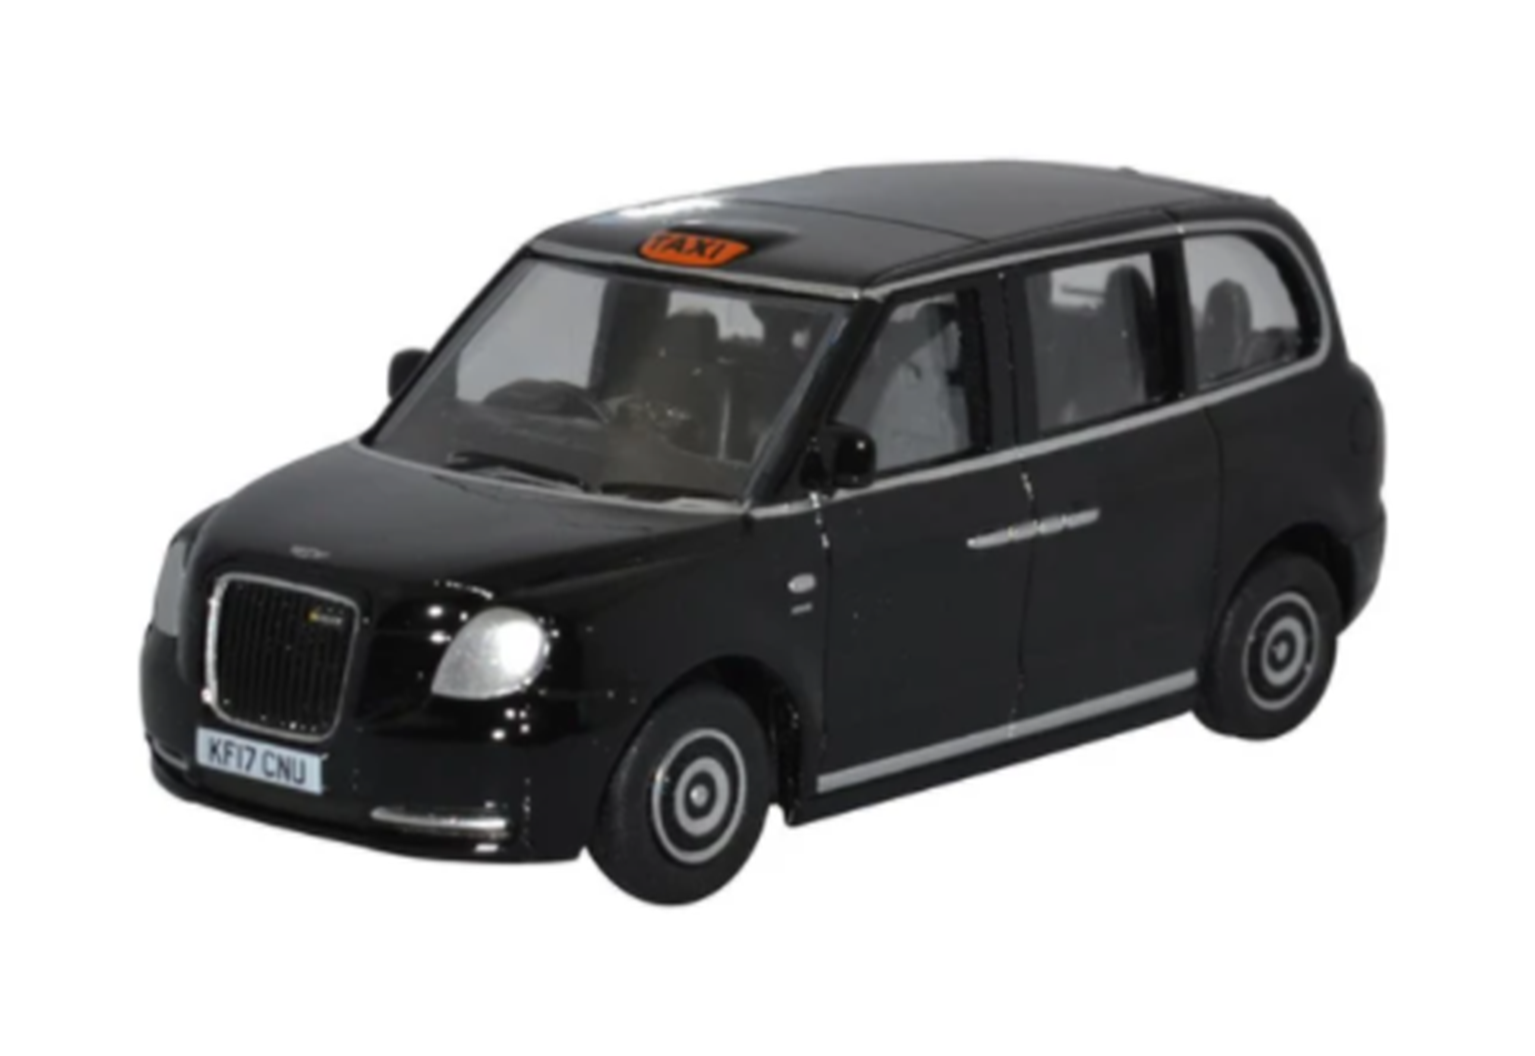 76TX5001 TX5 LEVC Electric Taxi Black